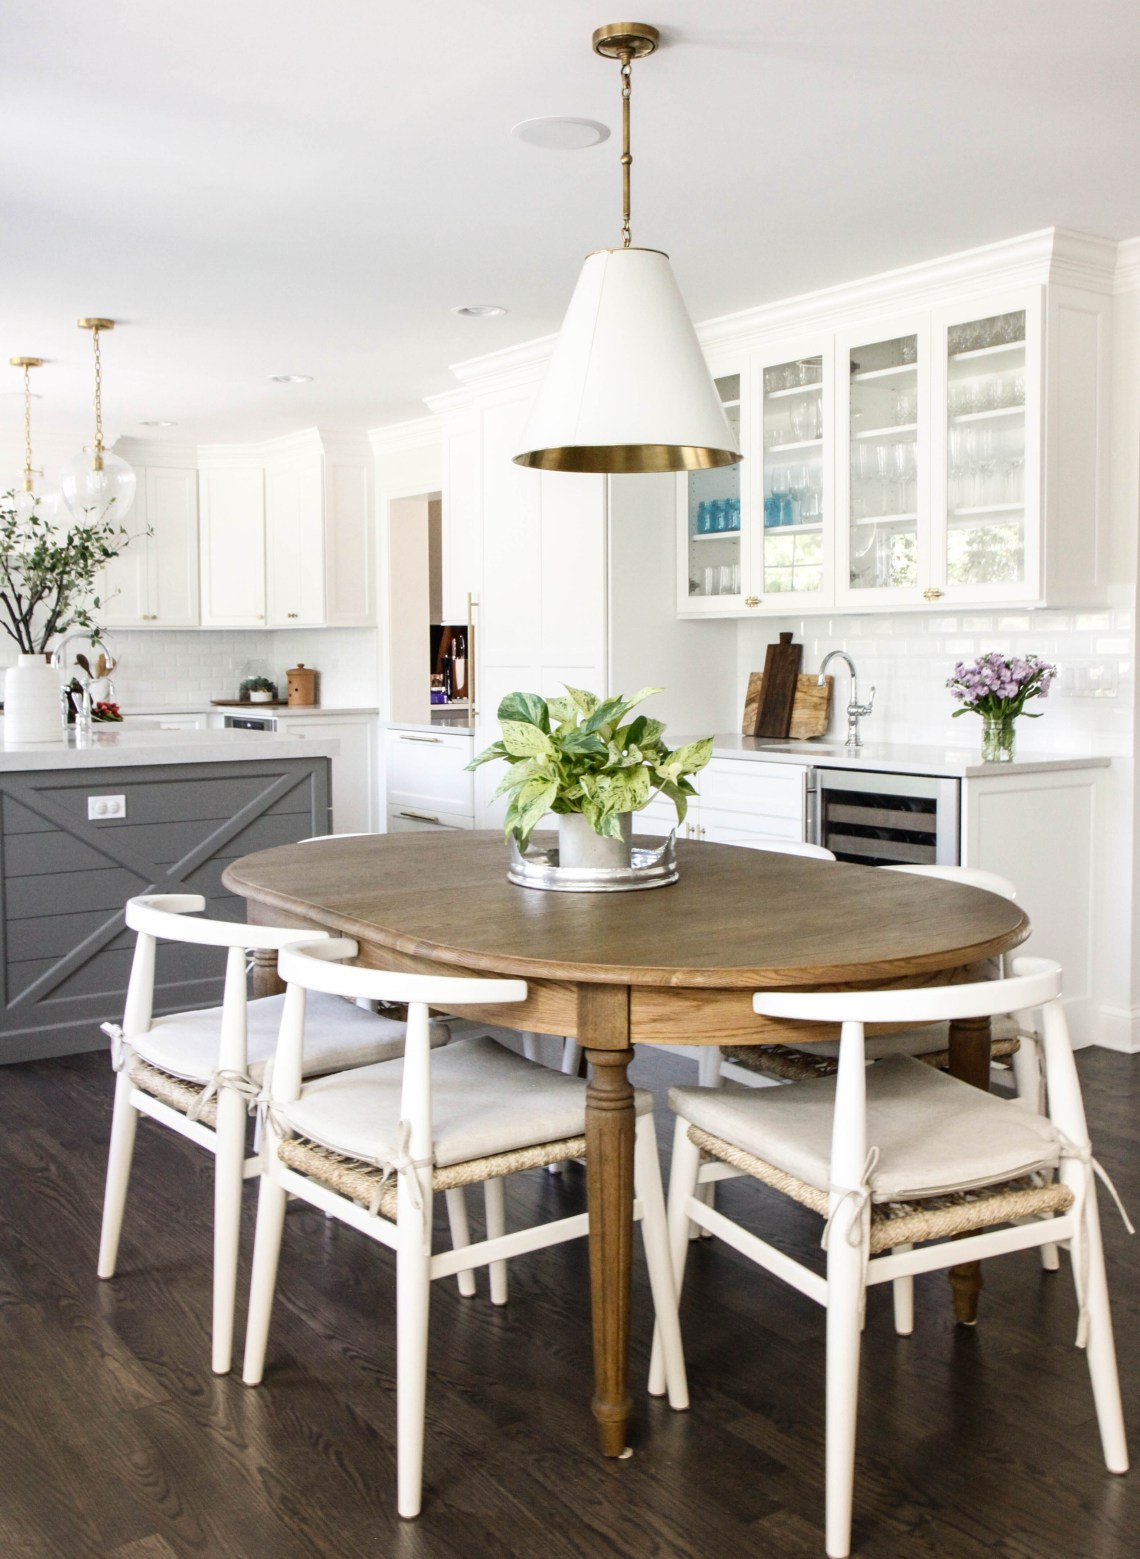 Kitchen Dining Interior Design: The Barrington Renovation: Before And Afters